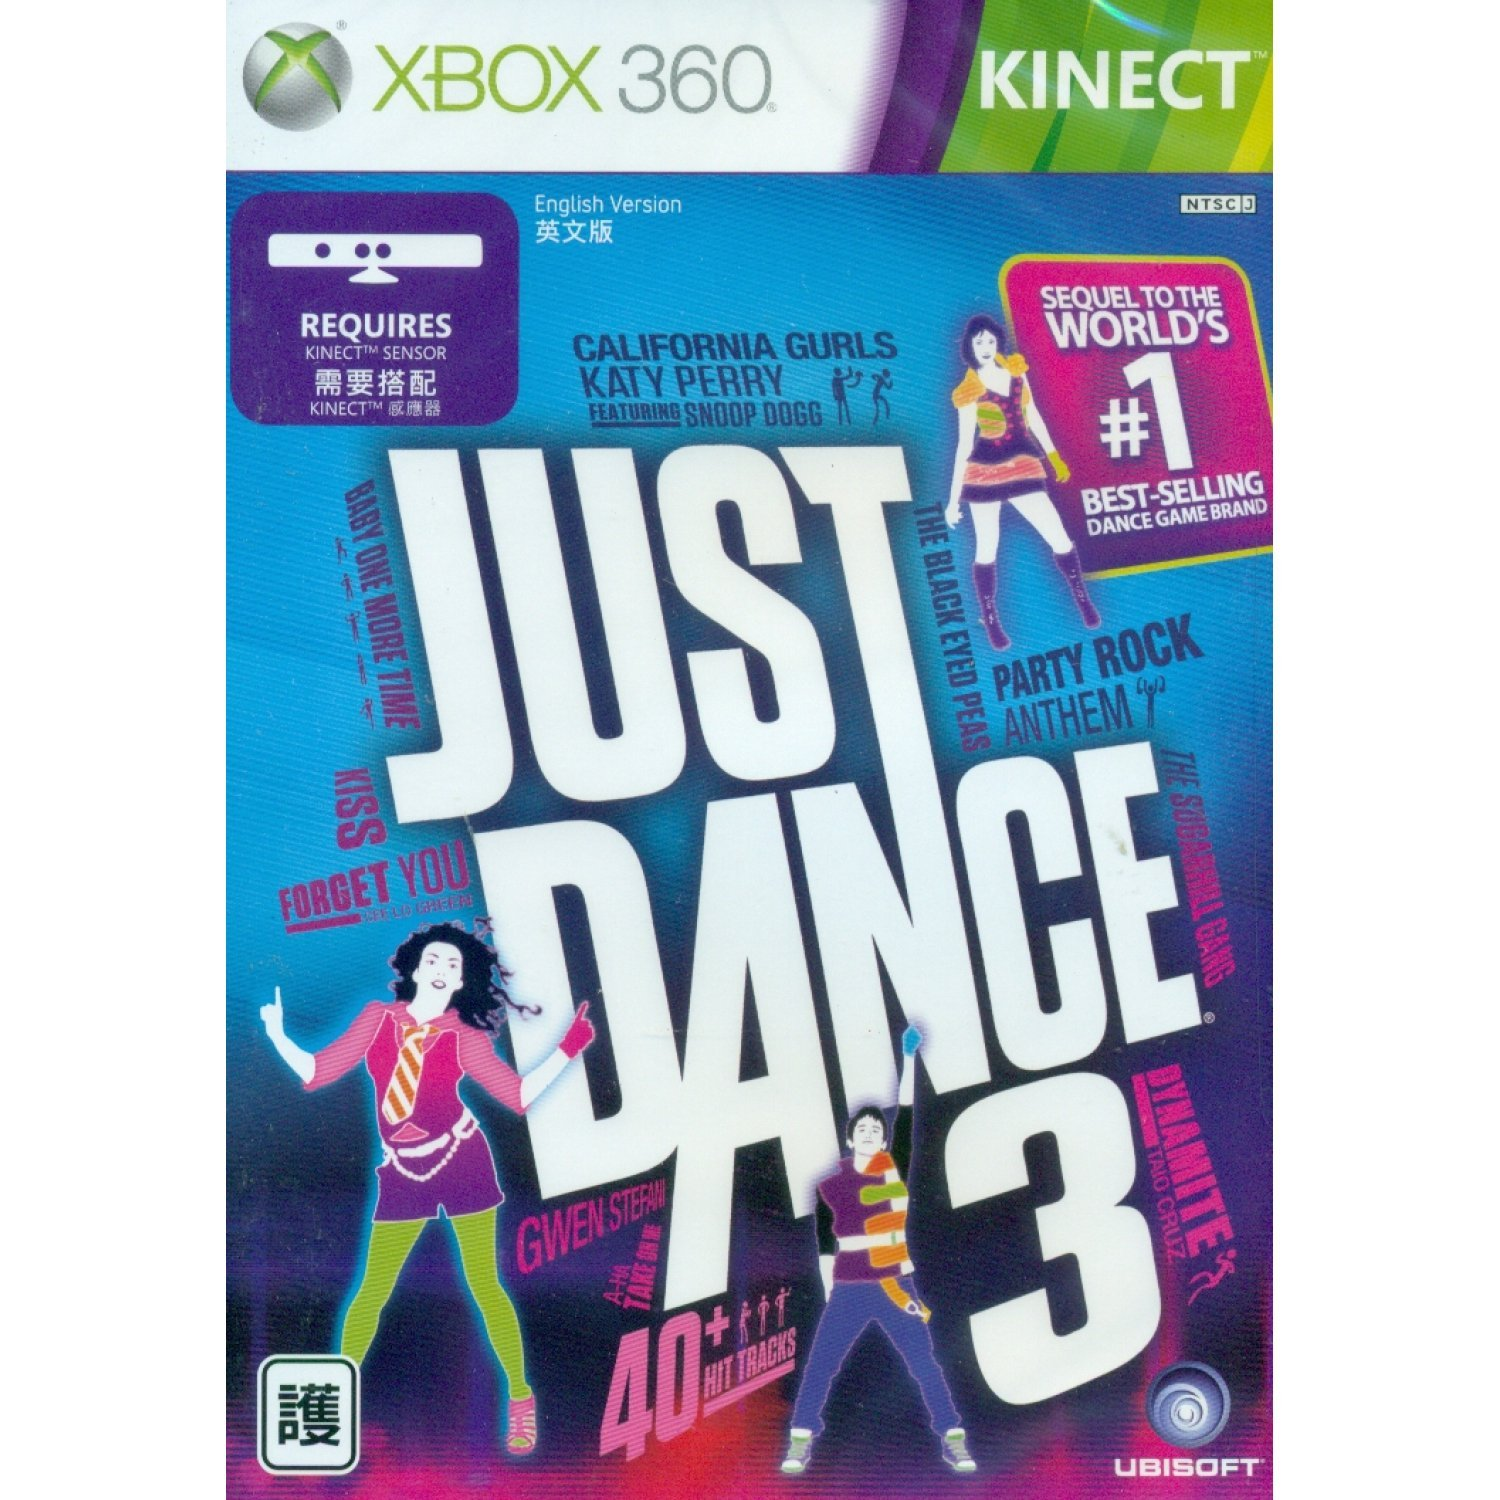 Just Dance 3 preowned